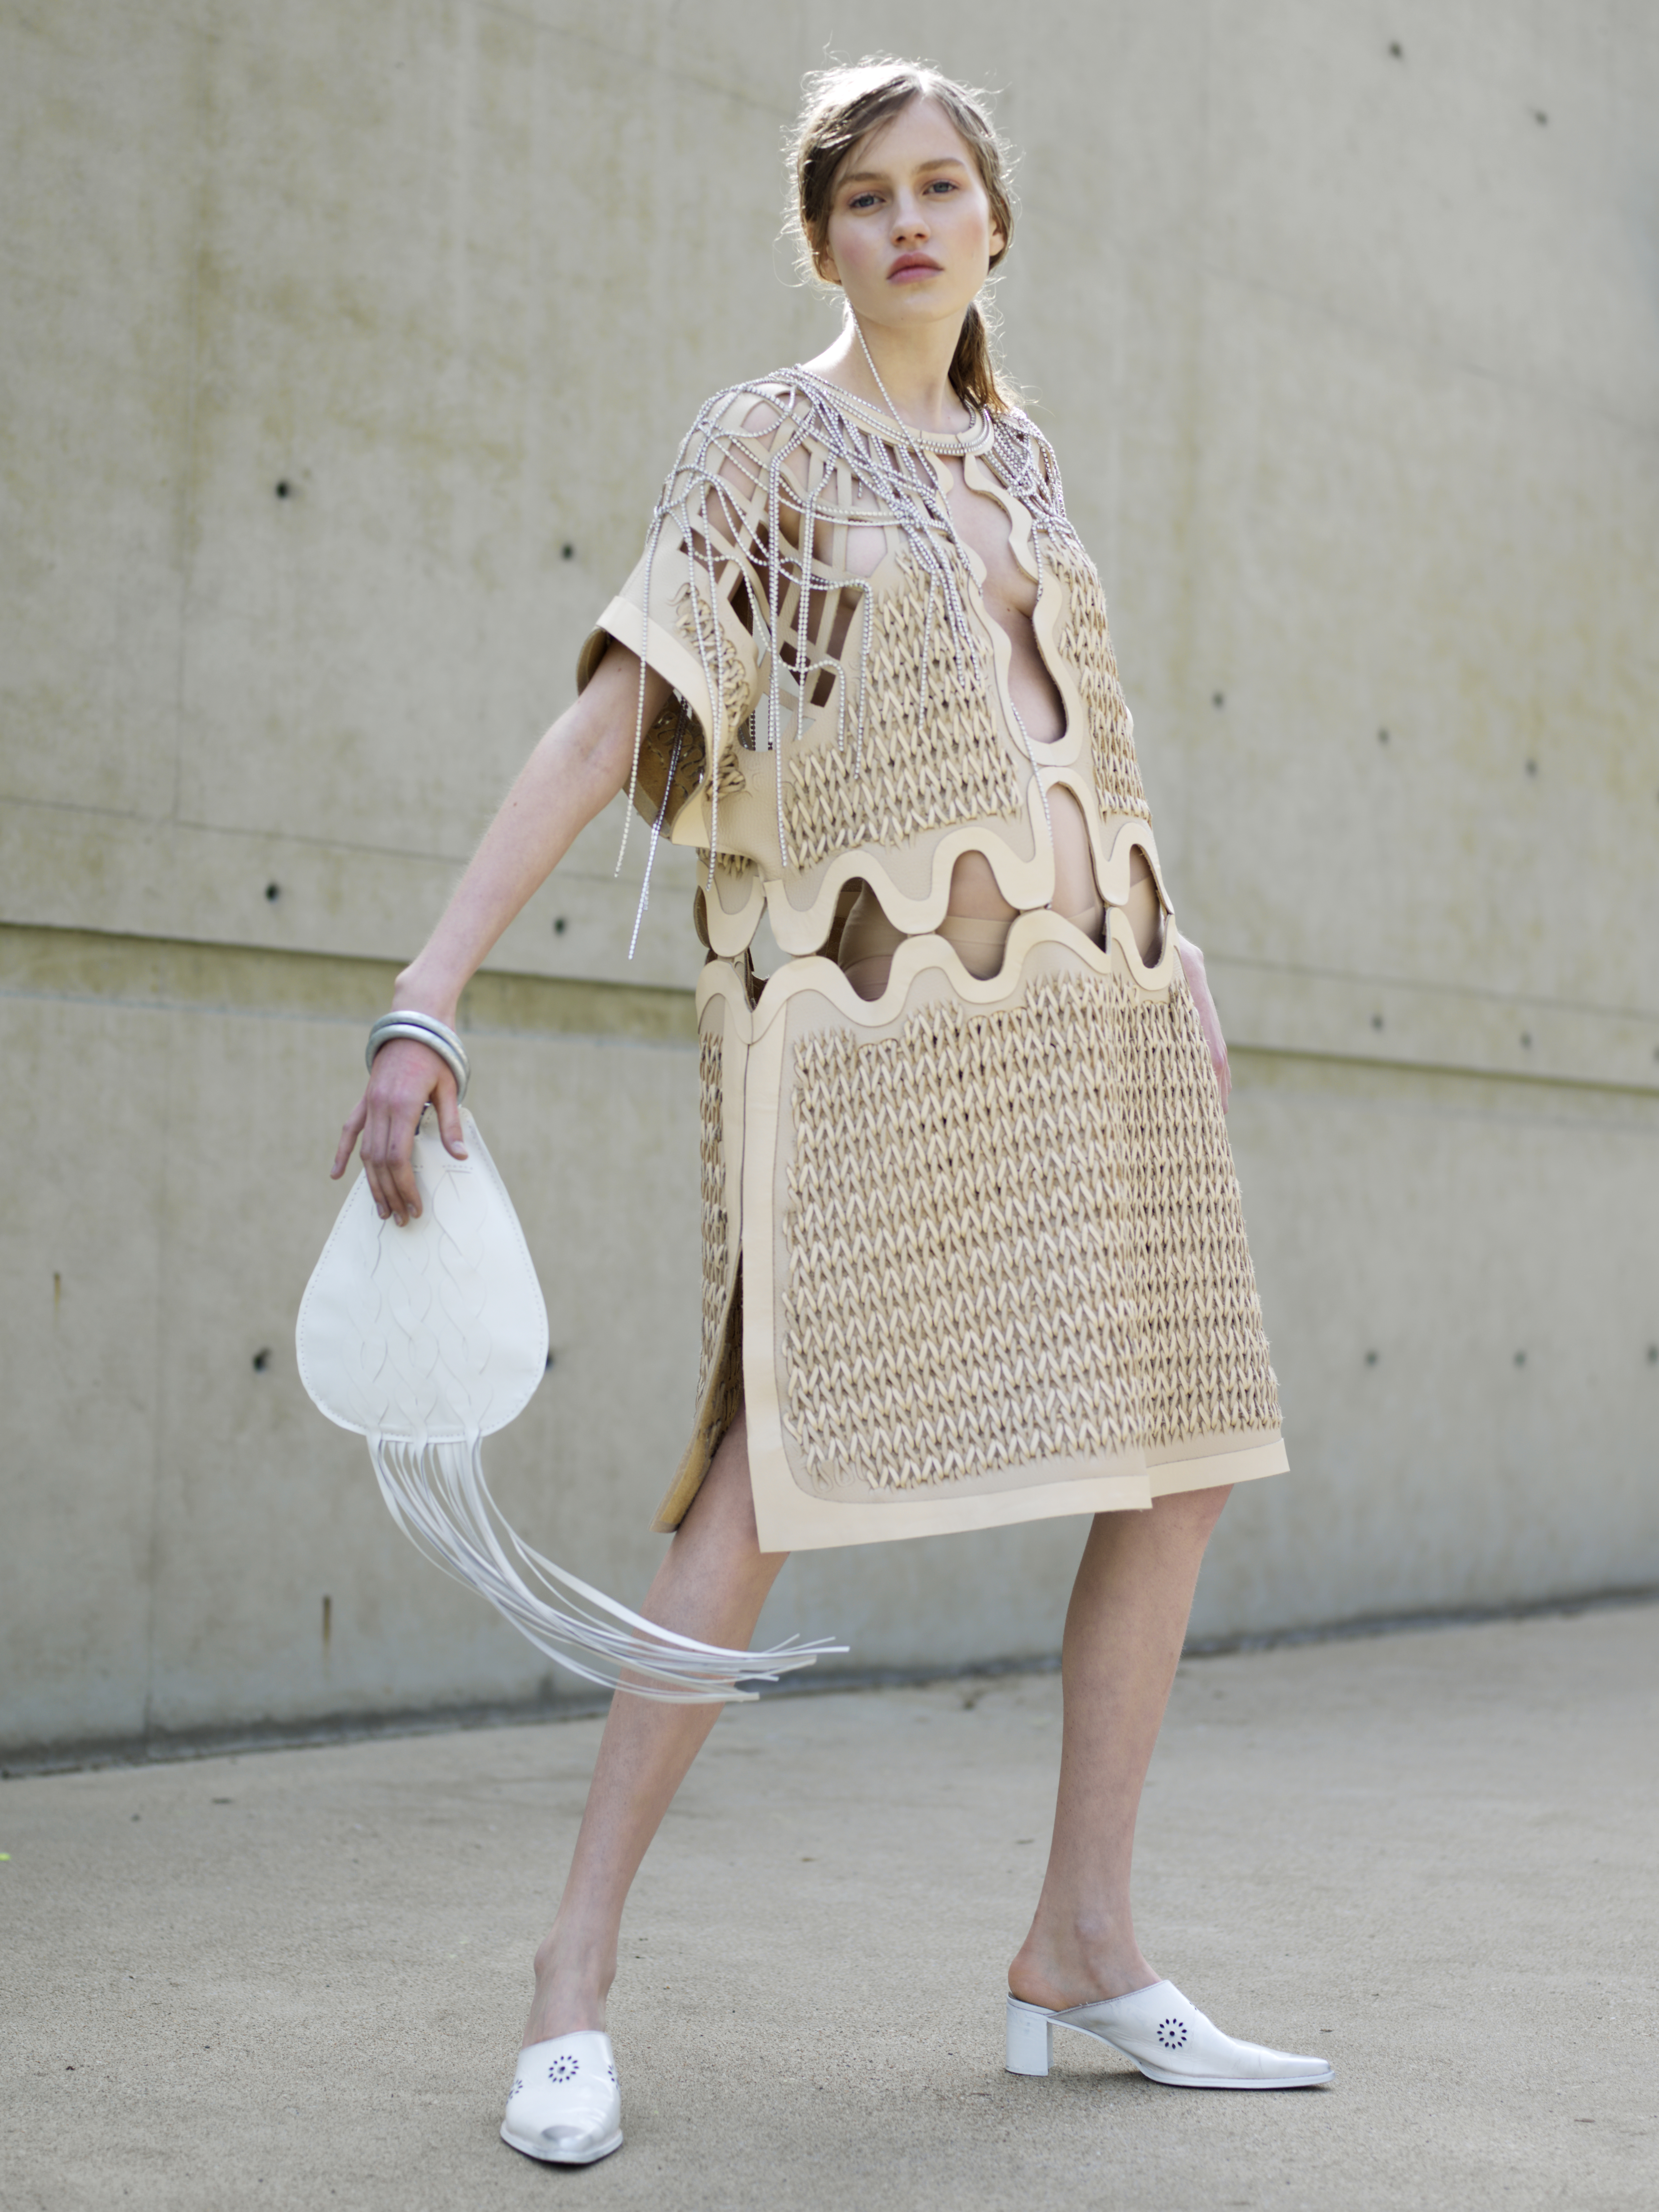 Marie-Eve Lecavalier weaved leftover scraps of leather to create this dress.